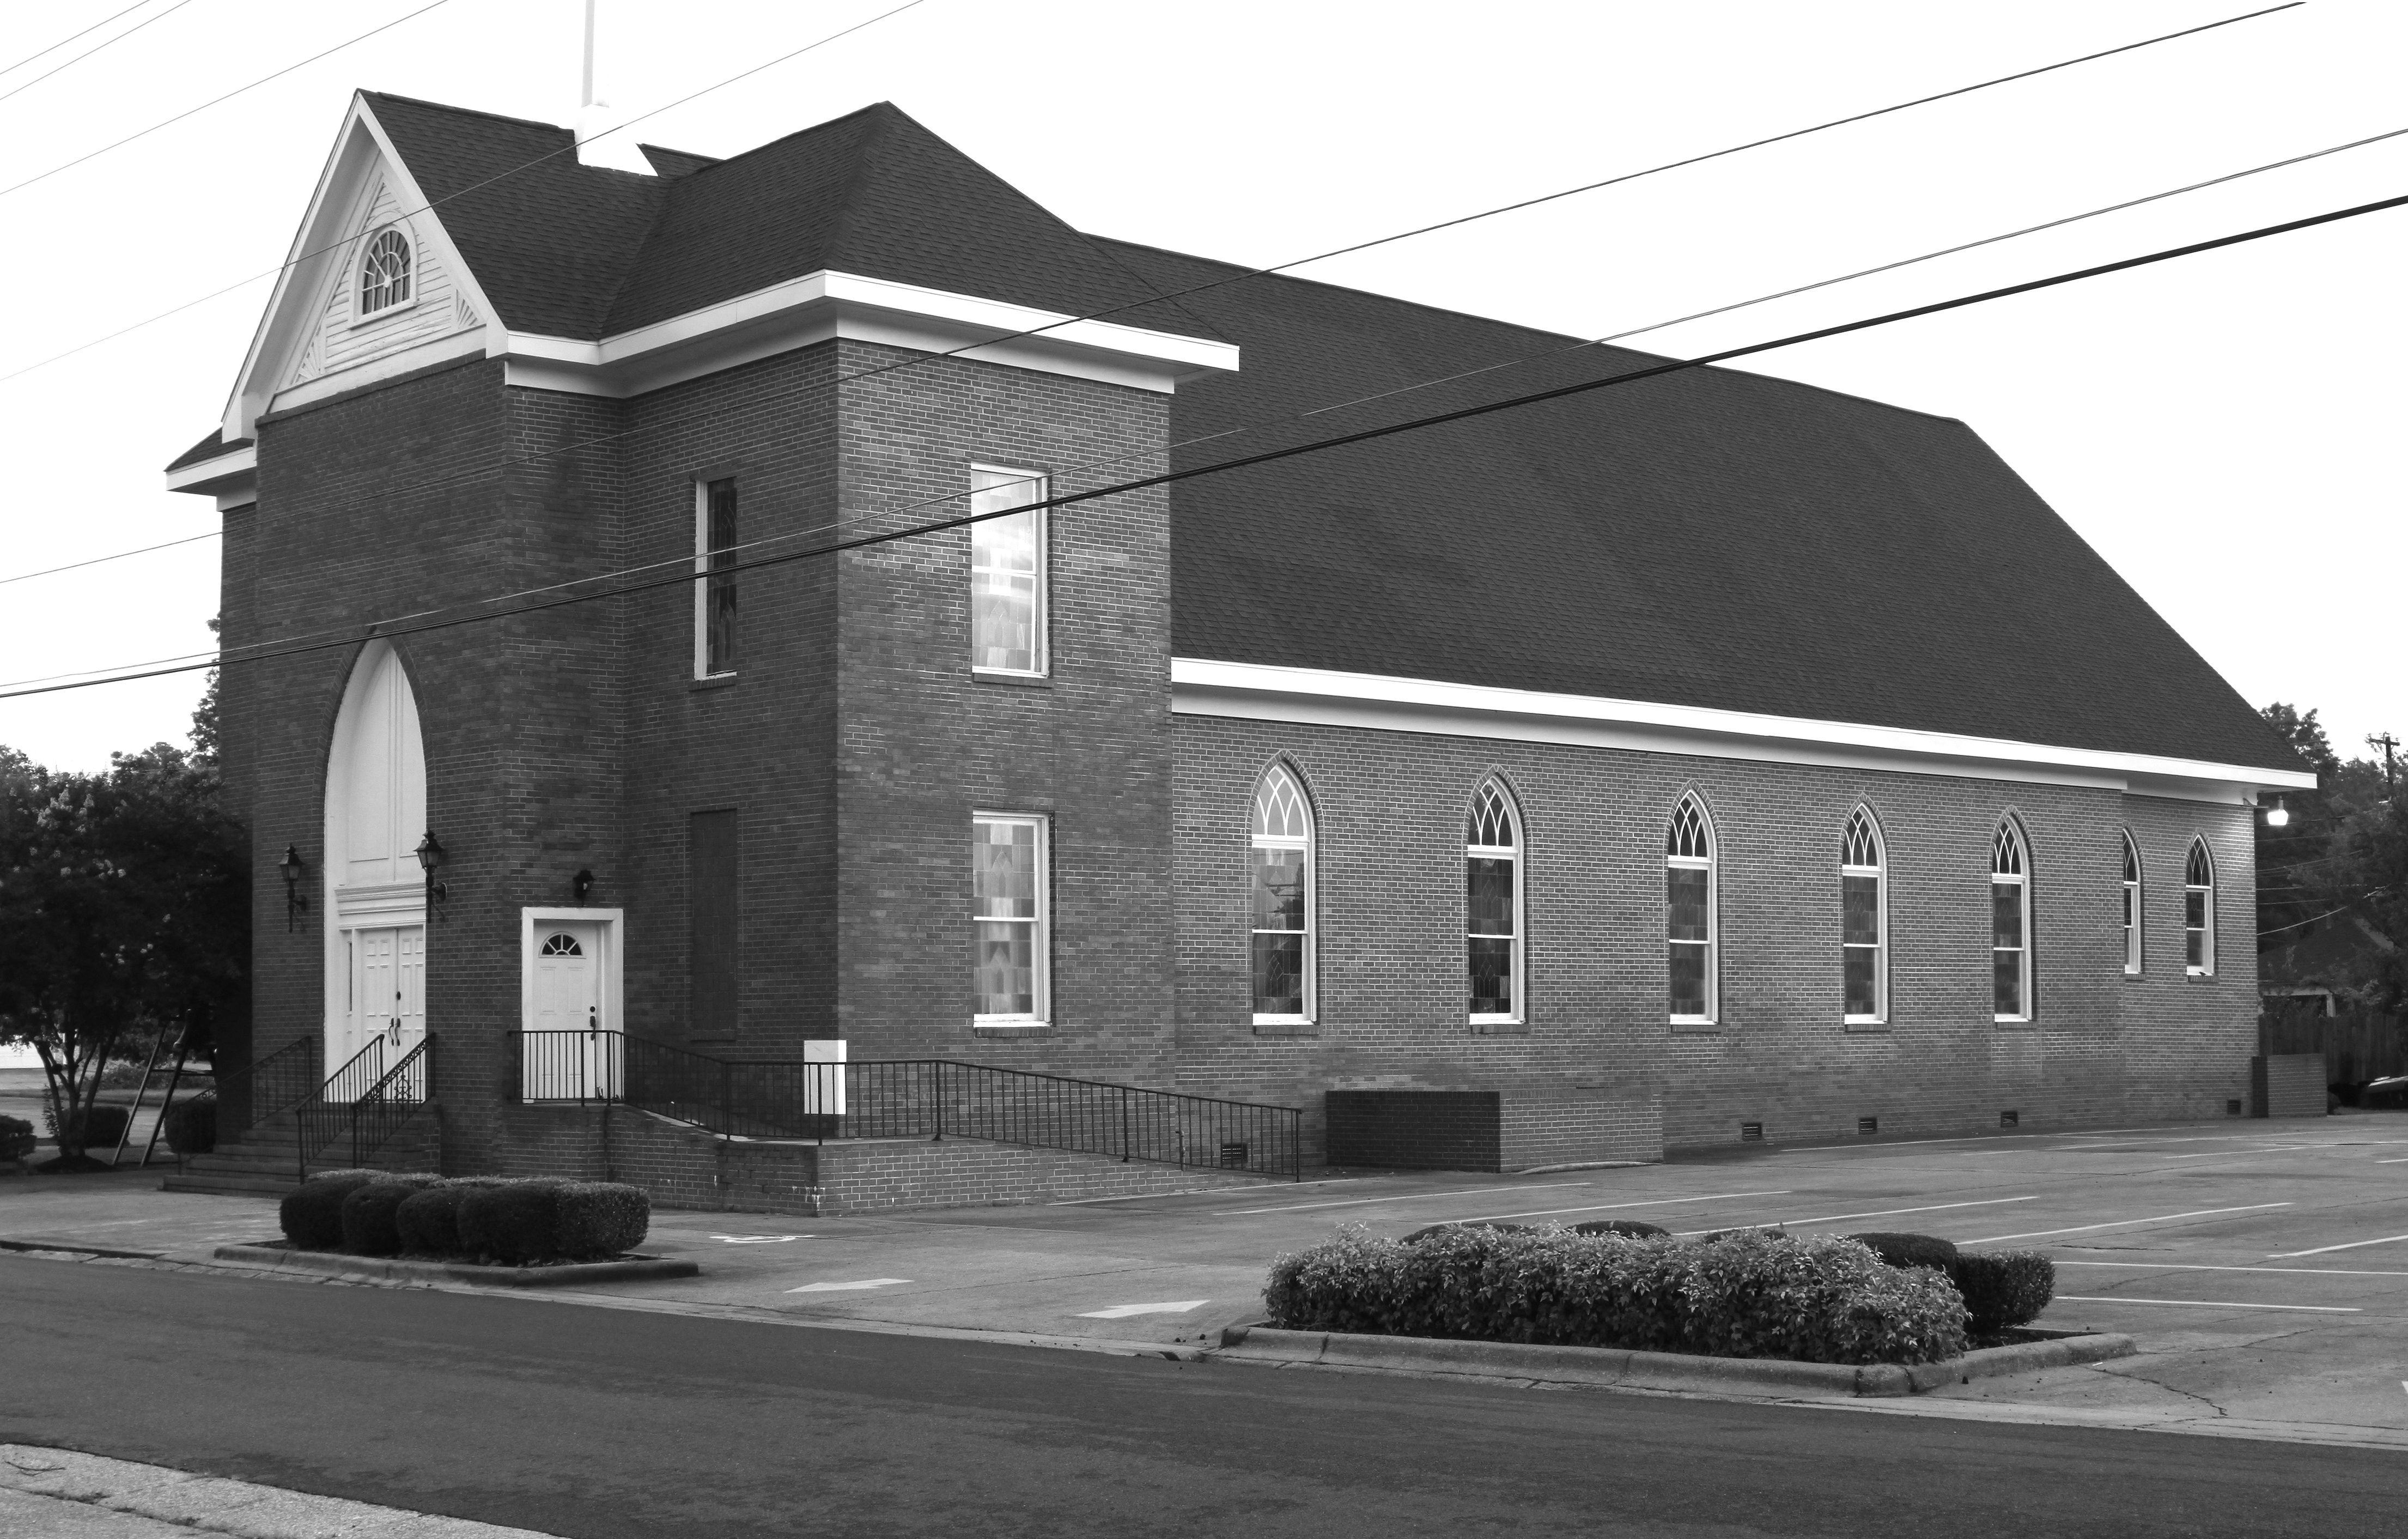 Missionary Union Baptist Church